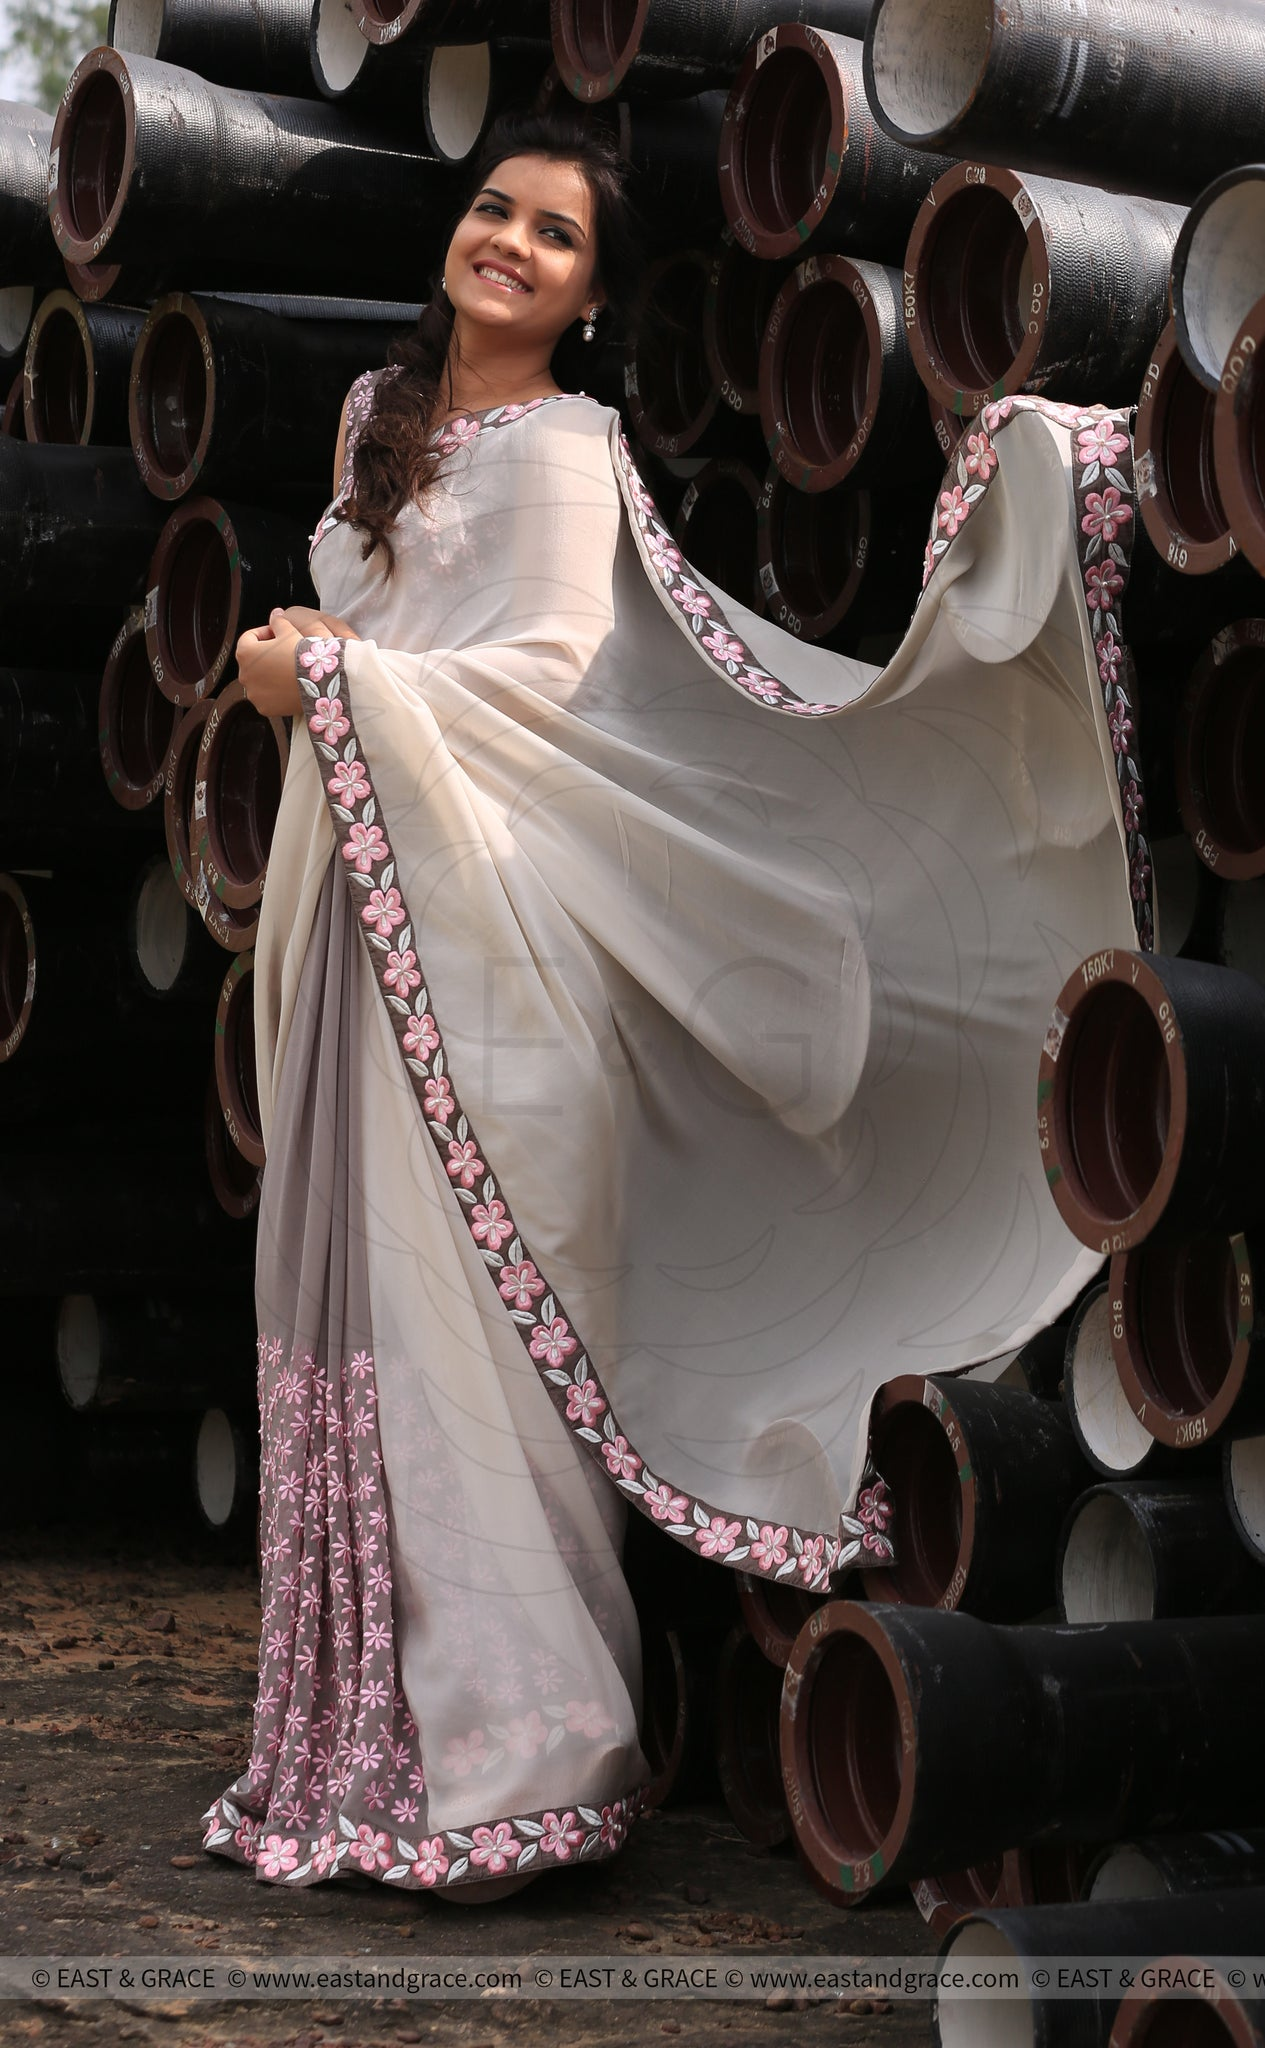 Gray Pure Georgette Saree with Frangipani Floral Embroidery